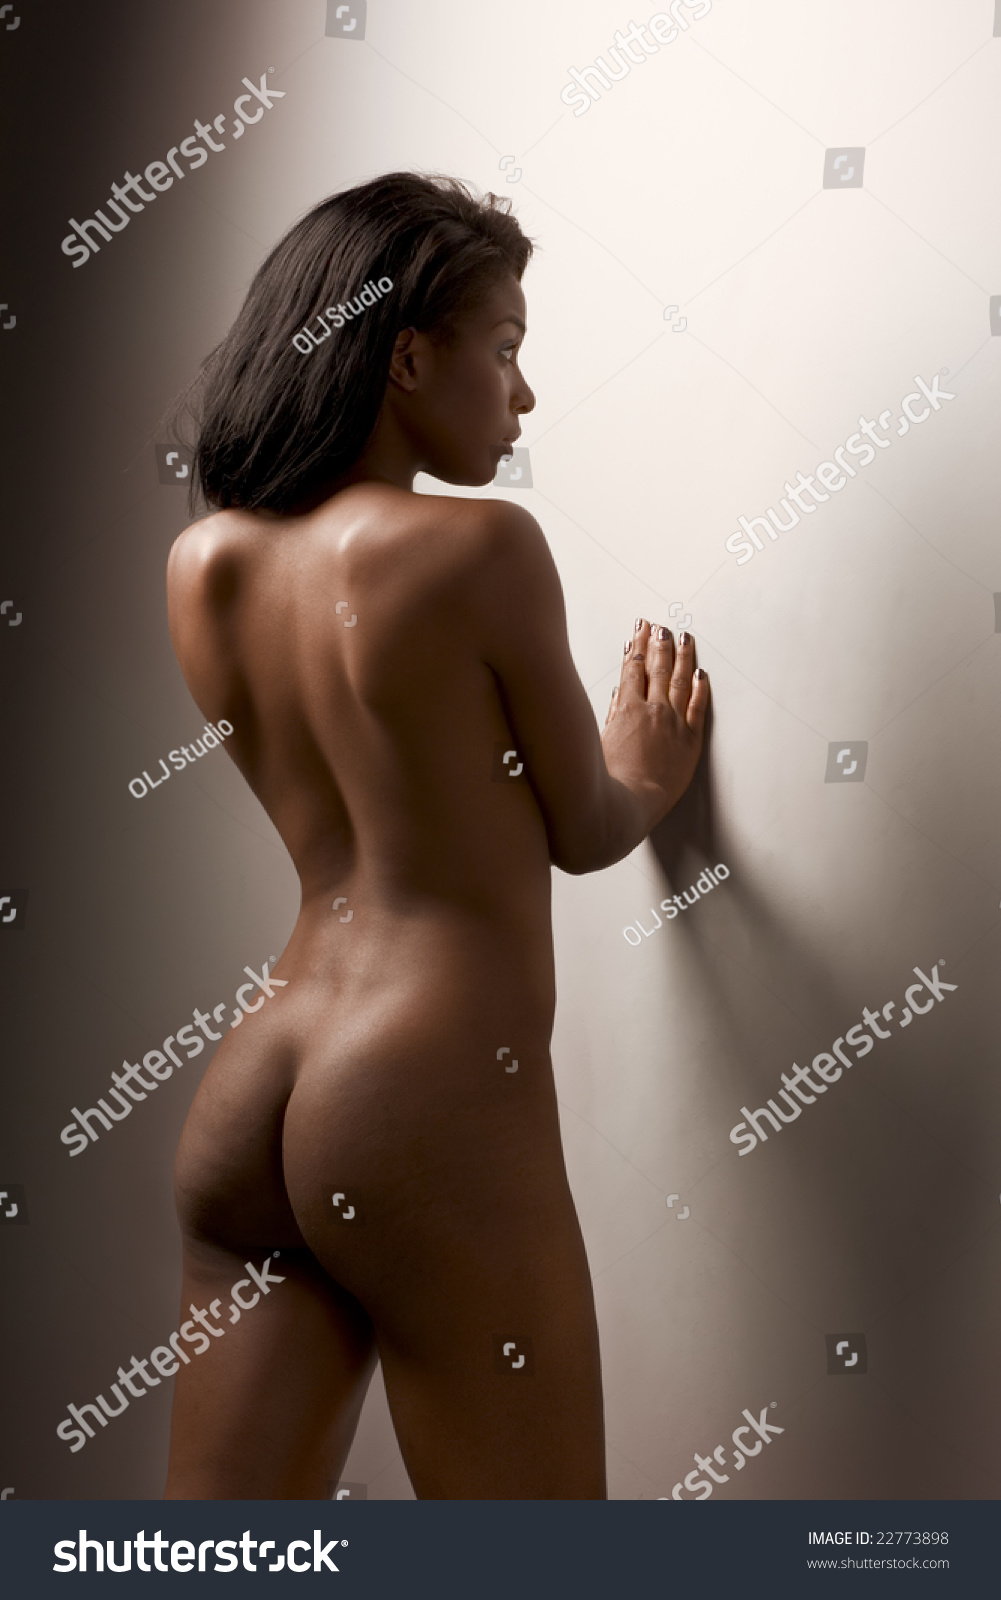 Apologise, Dark skinned naked girl pics agree with